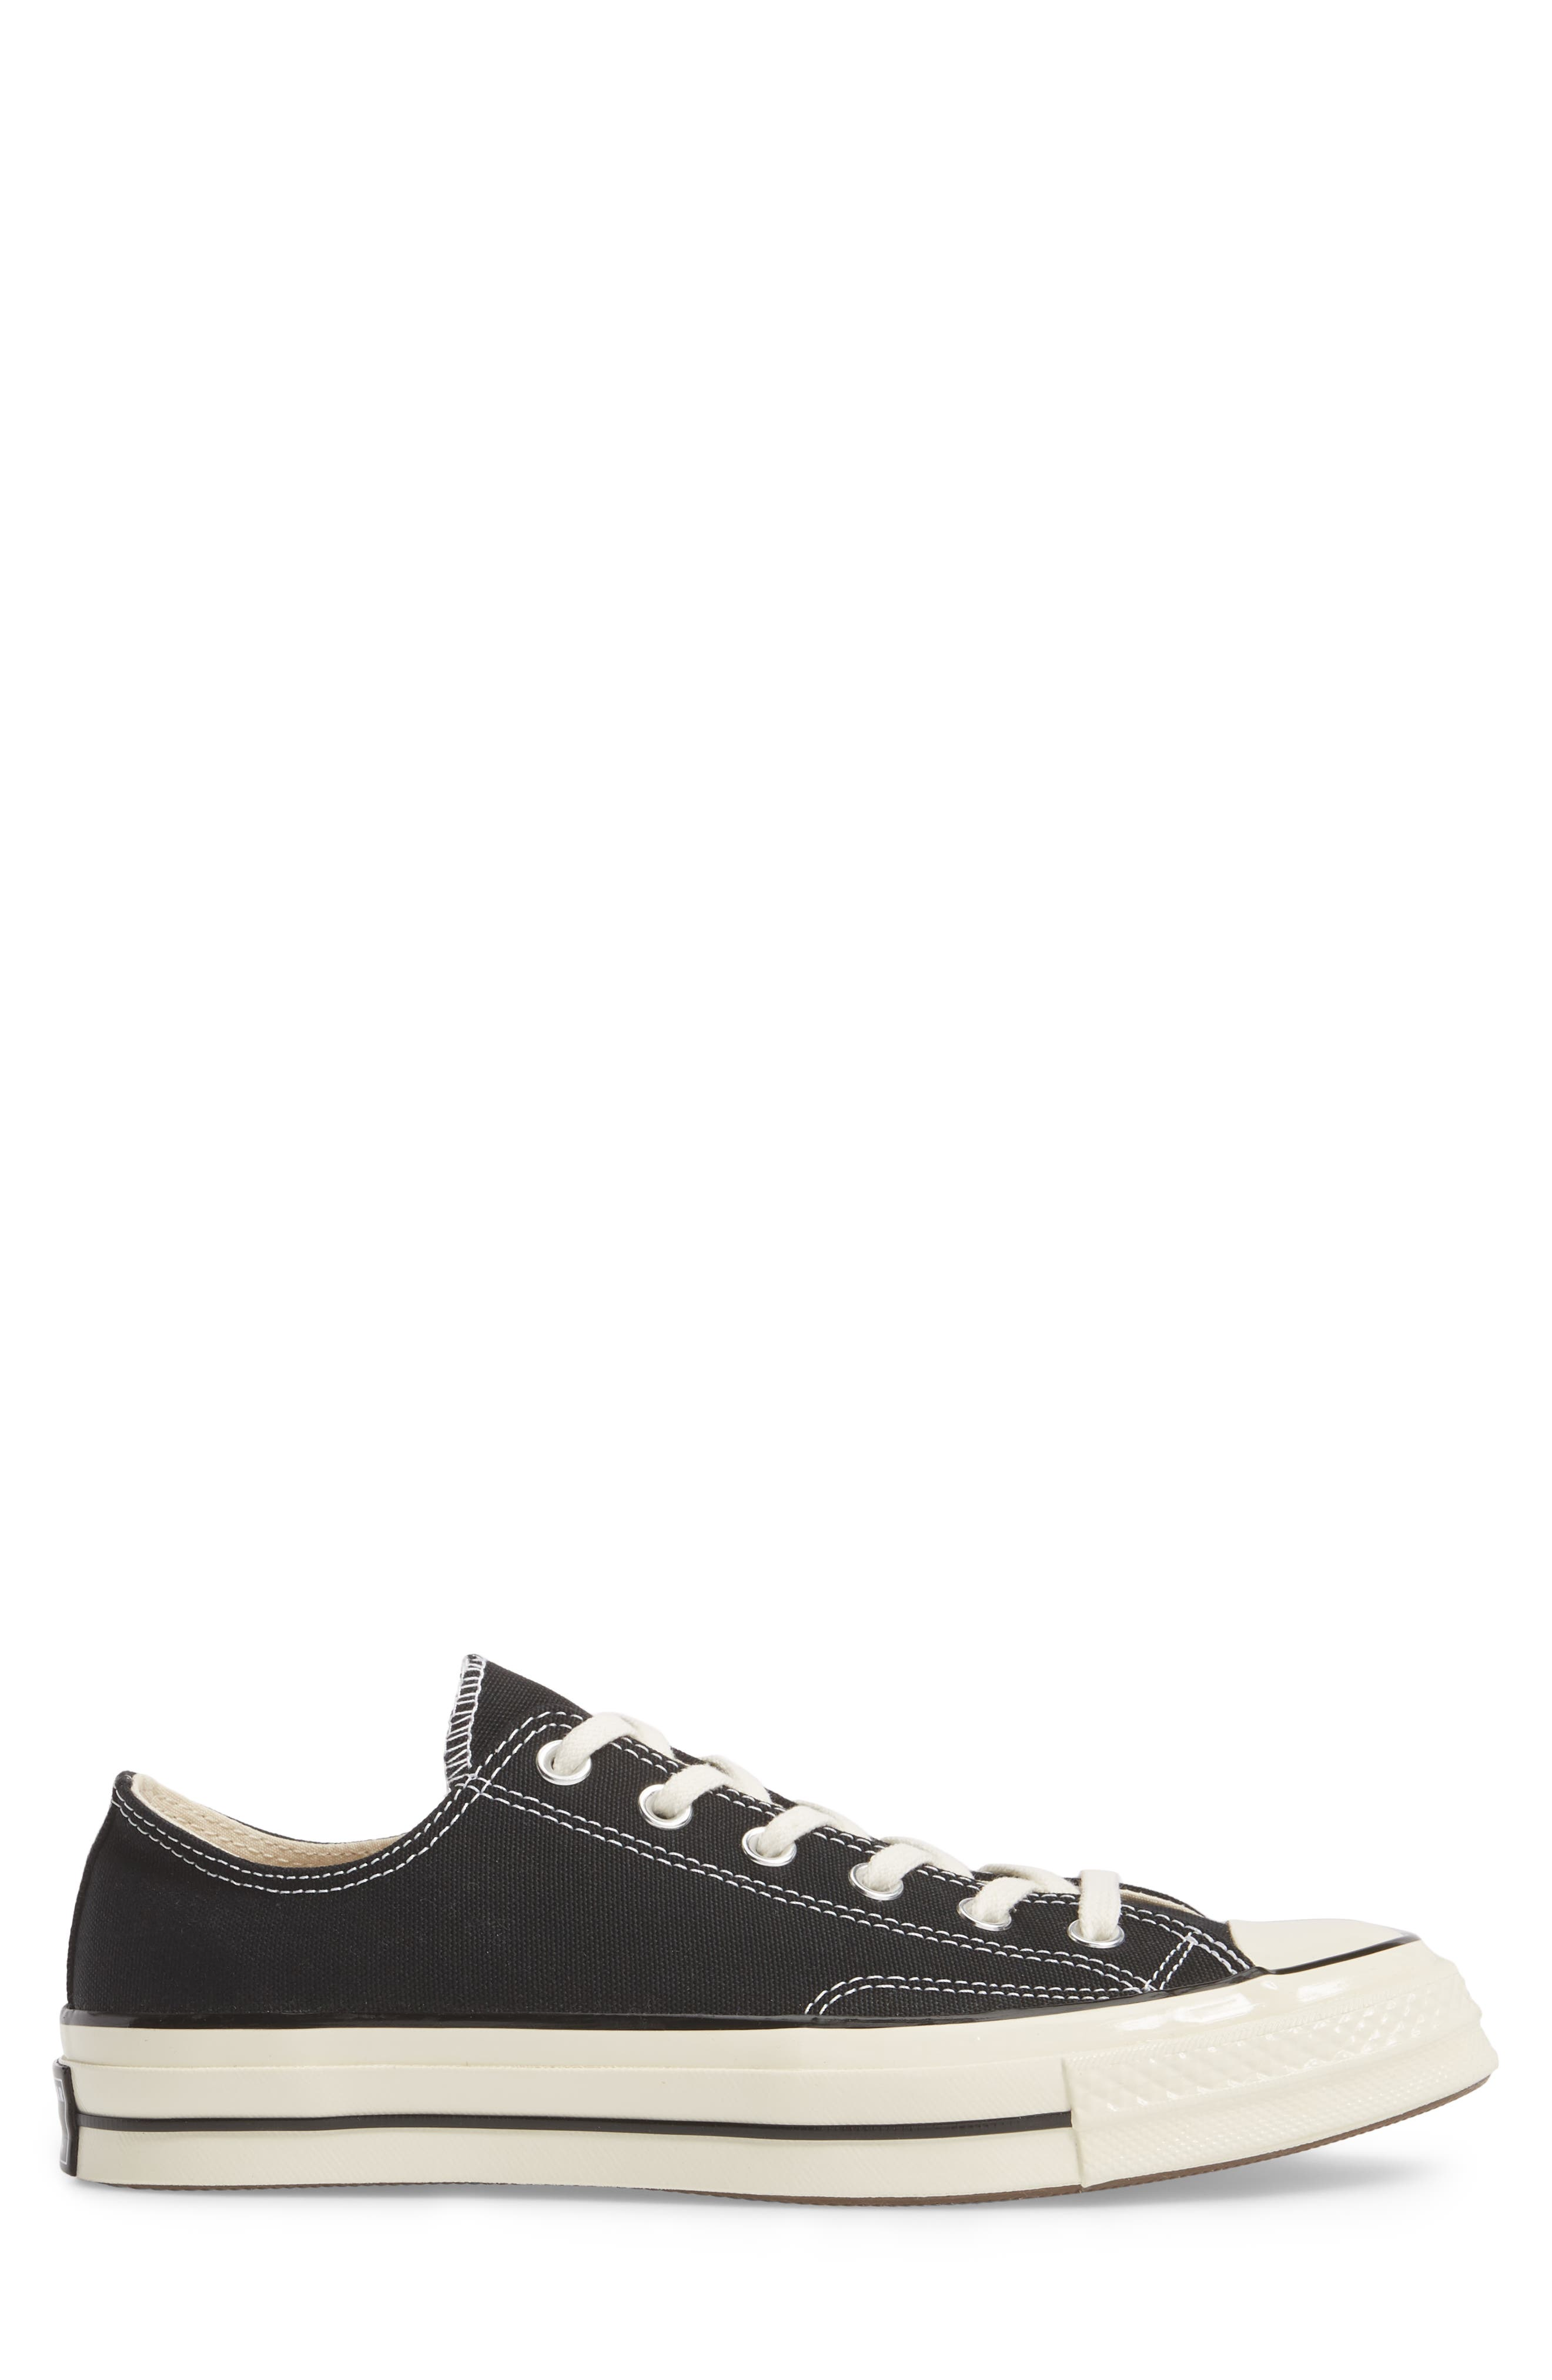 Chuck Taylor<sup>®</sup> All Star<sup>®</sup> 70 Low Top Sneaker,                             Alternate thumbnail 3, color,                             BLACK